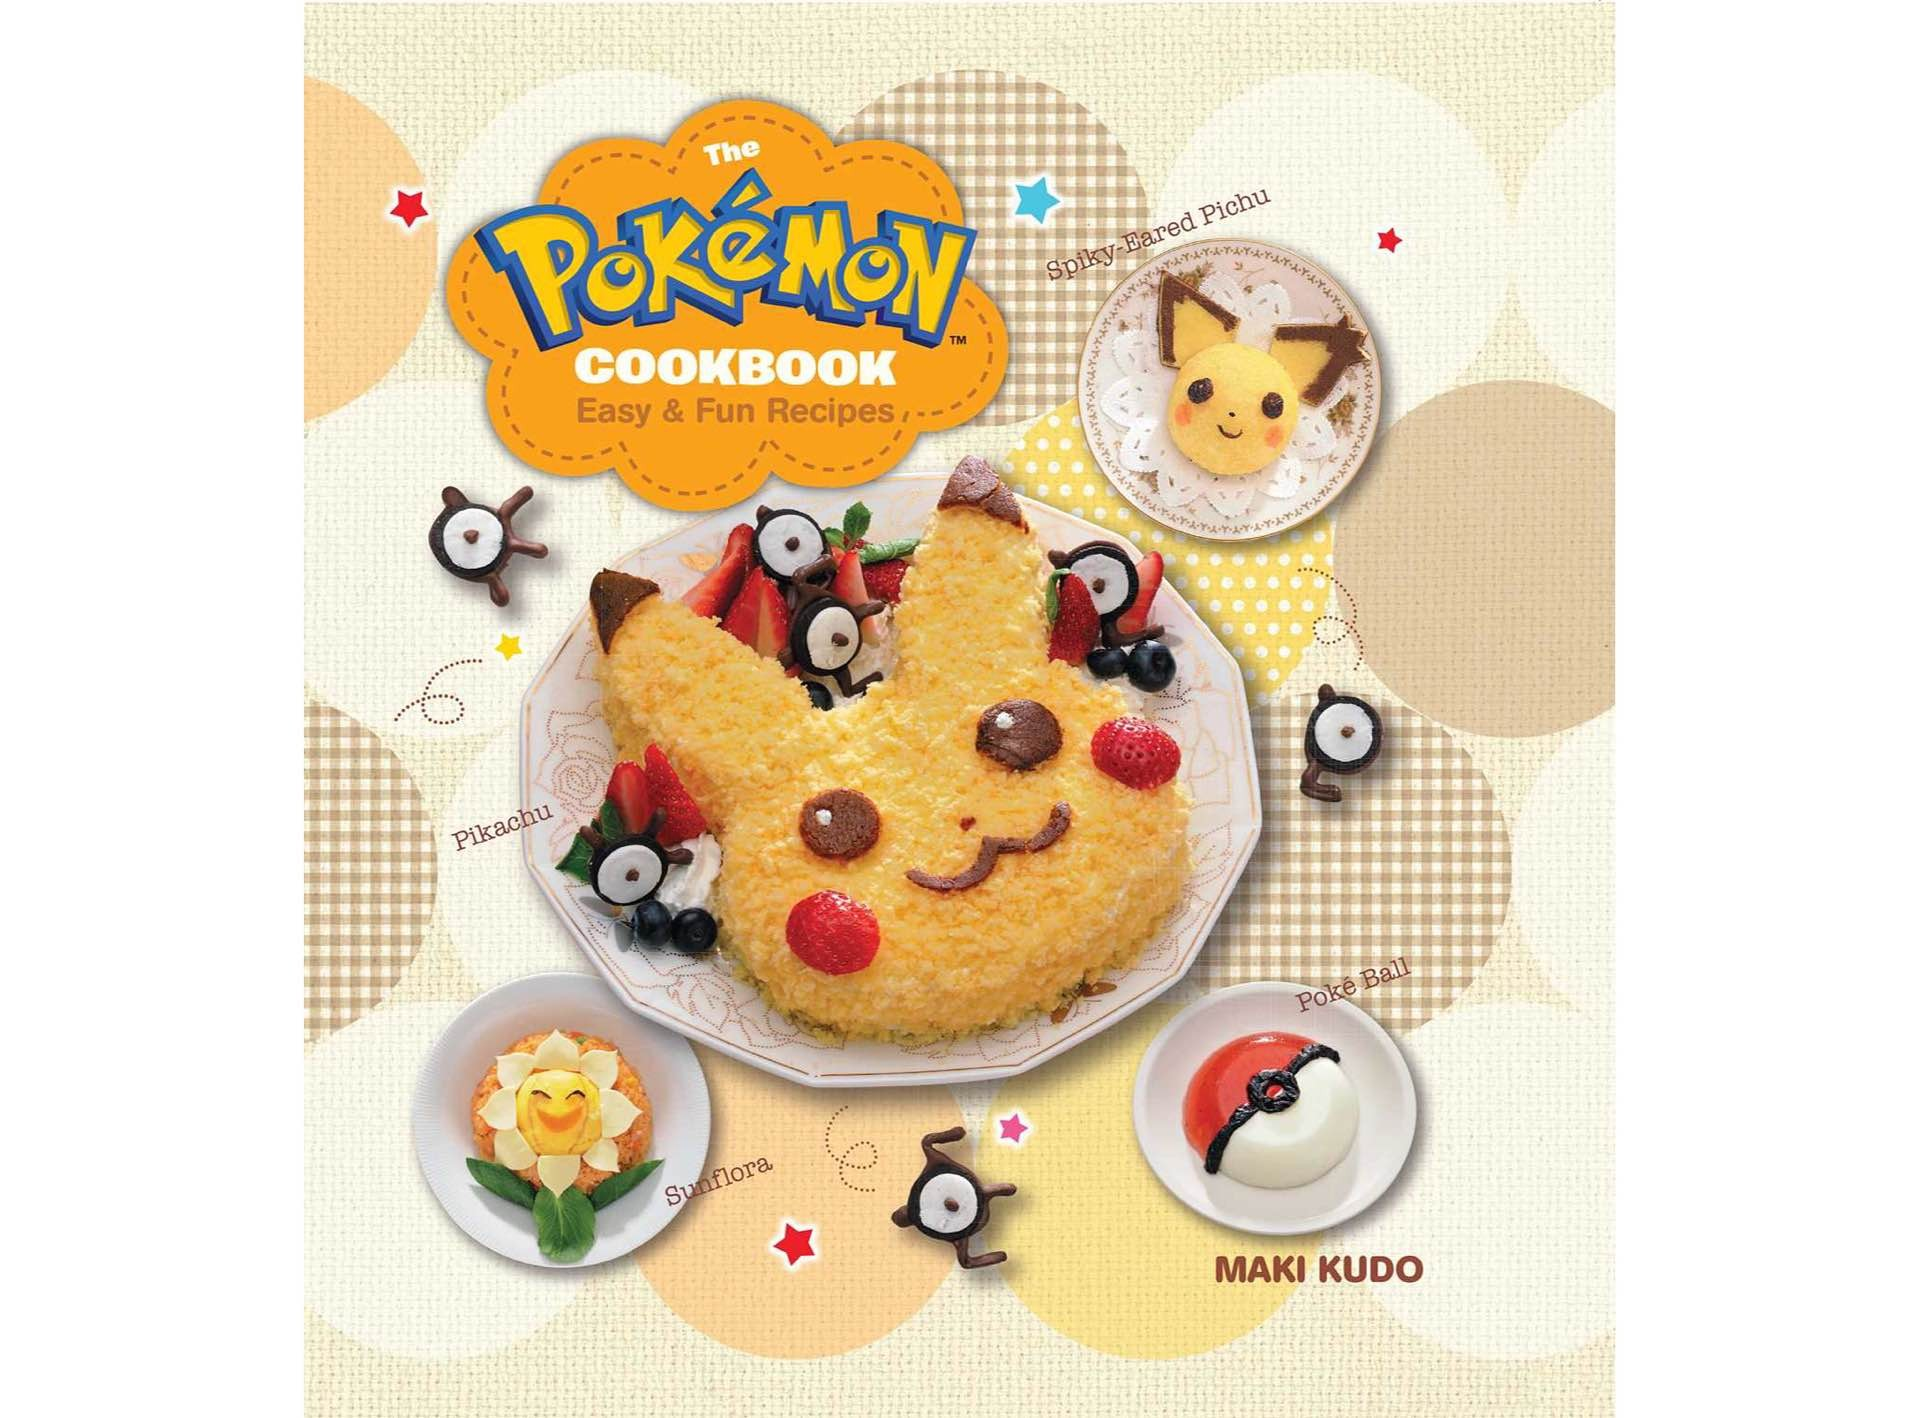 The Pokémon Cookbook: Easy & Fun Recipes by Maki Kudo.